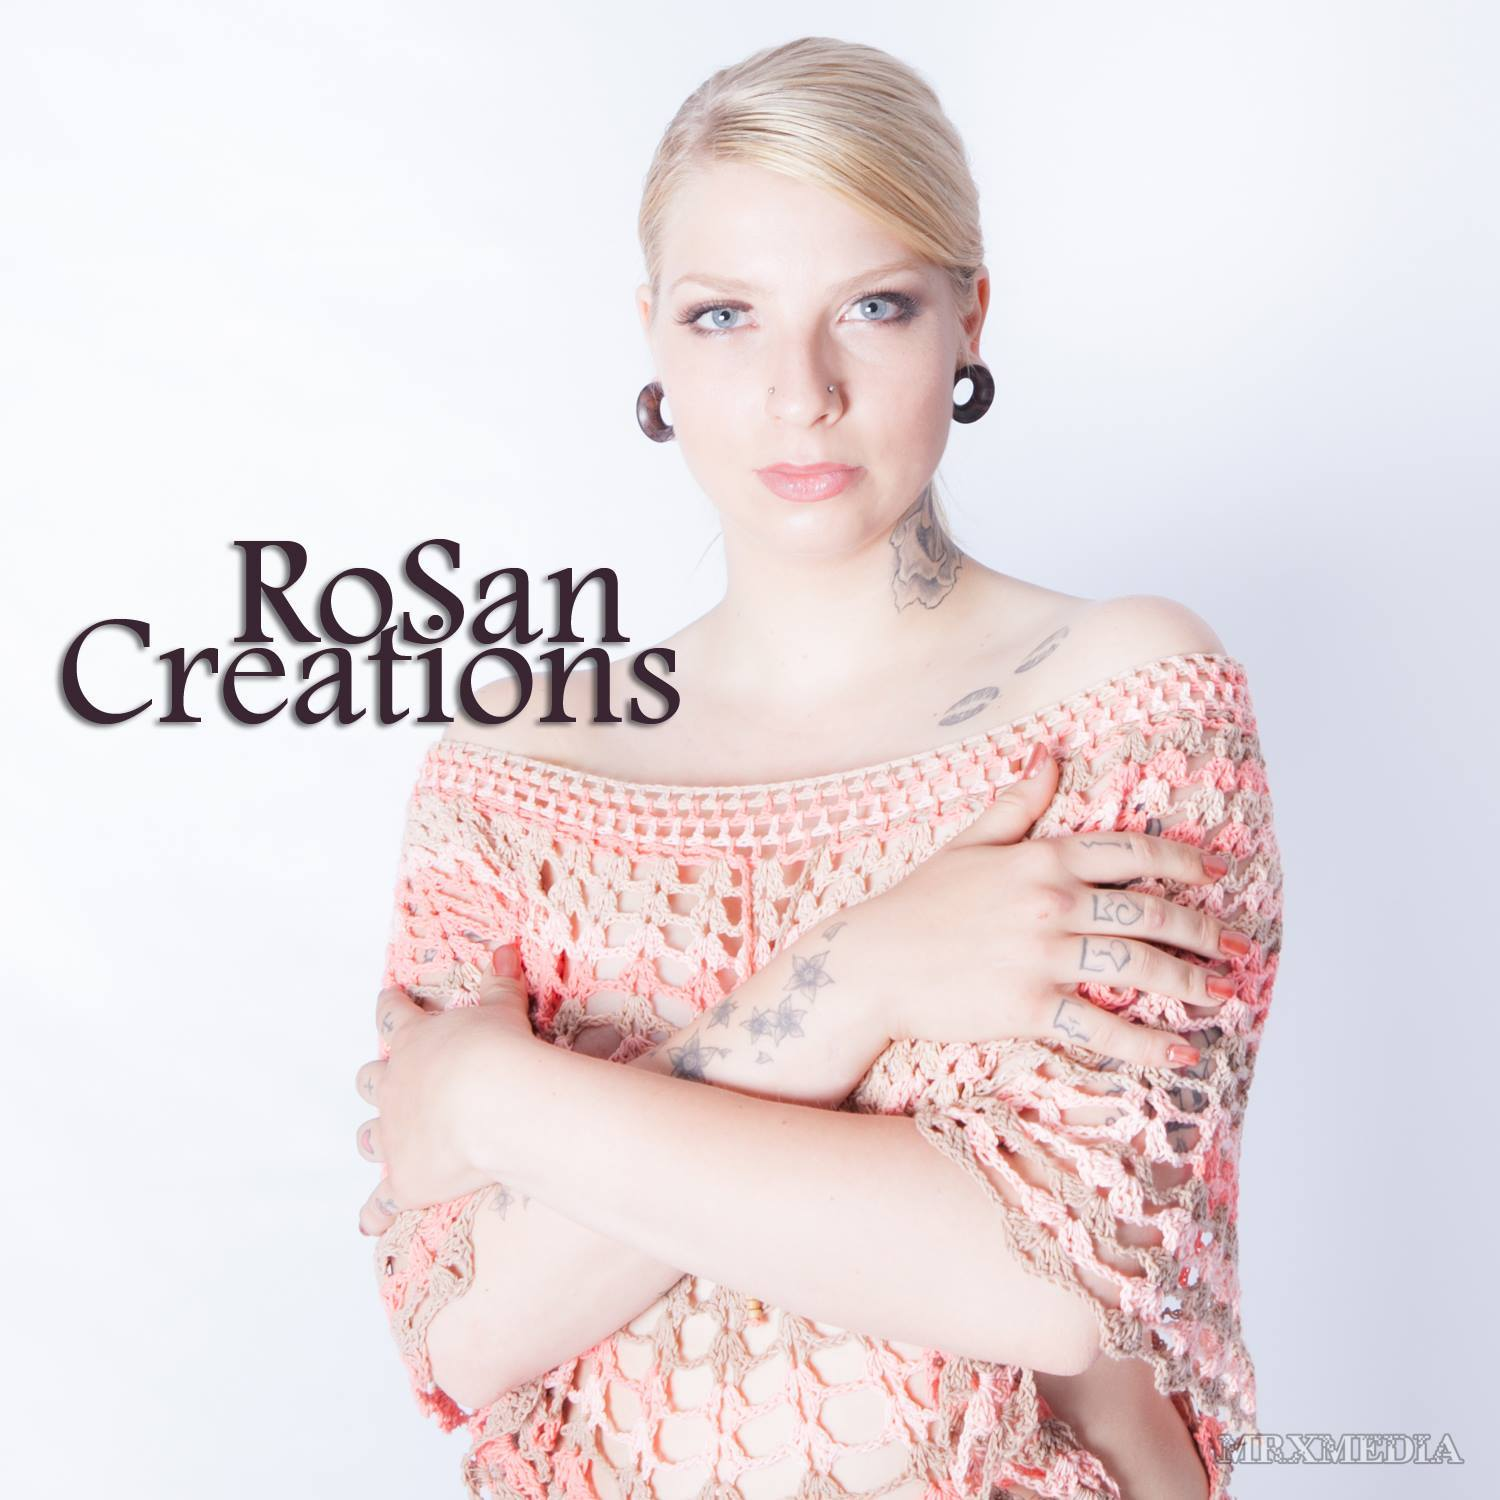 RoSan Creations op Facebook: